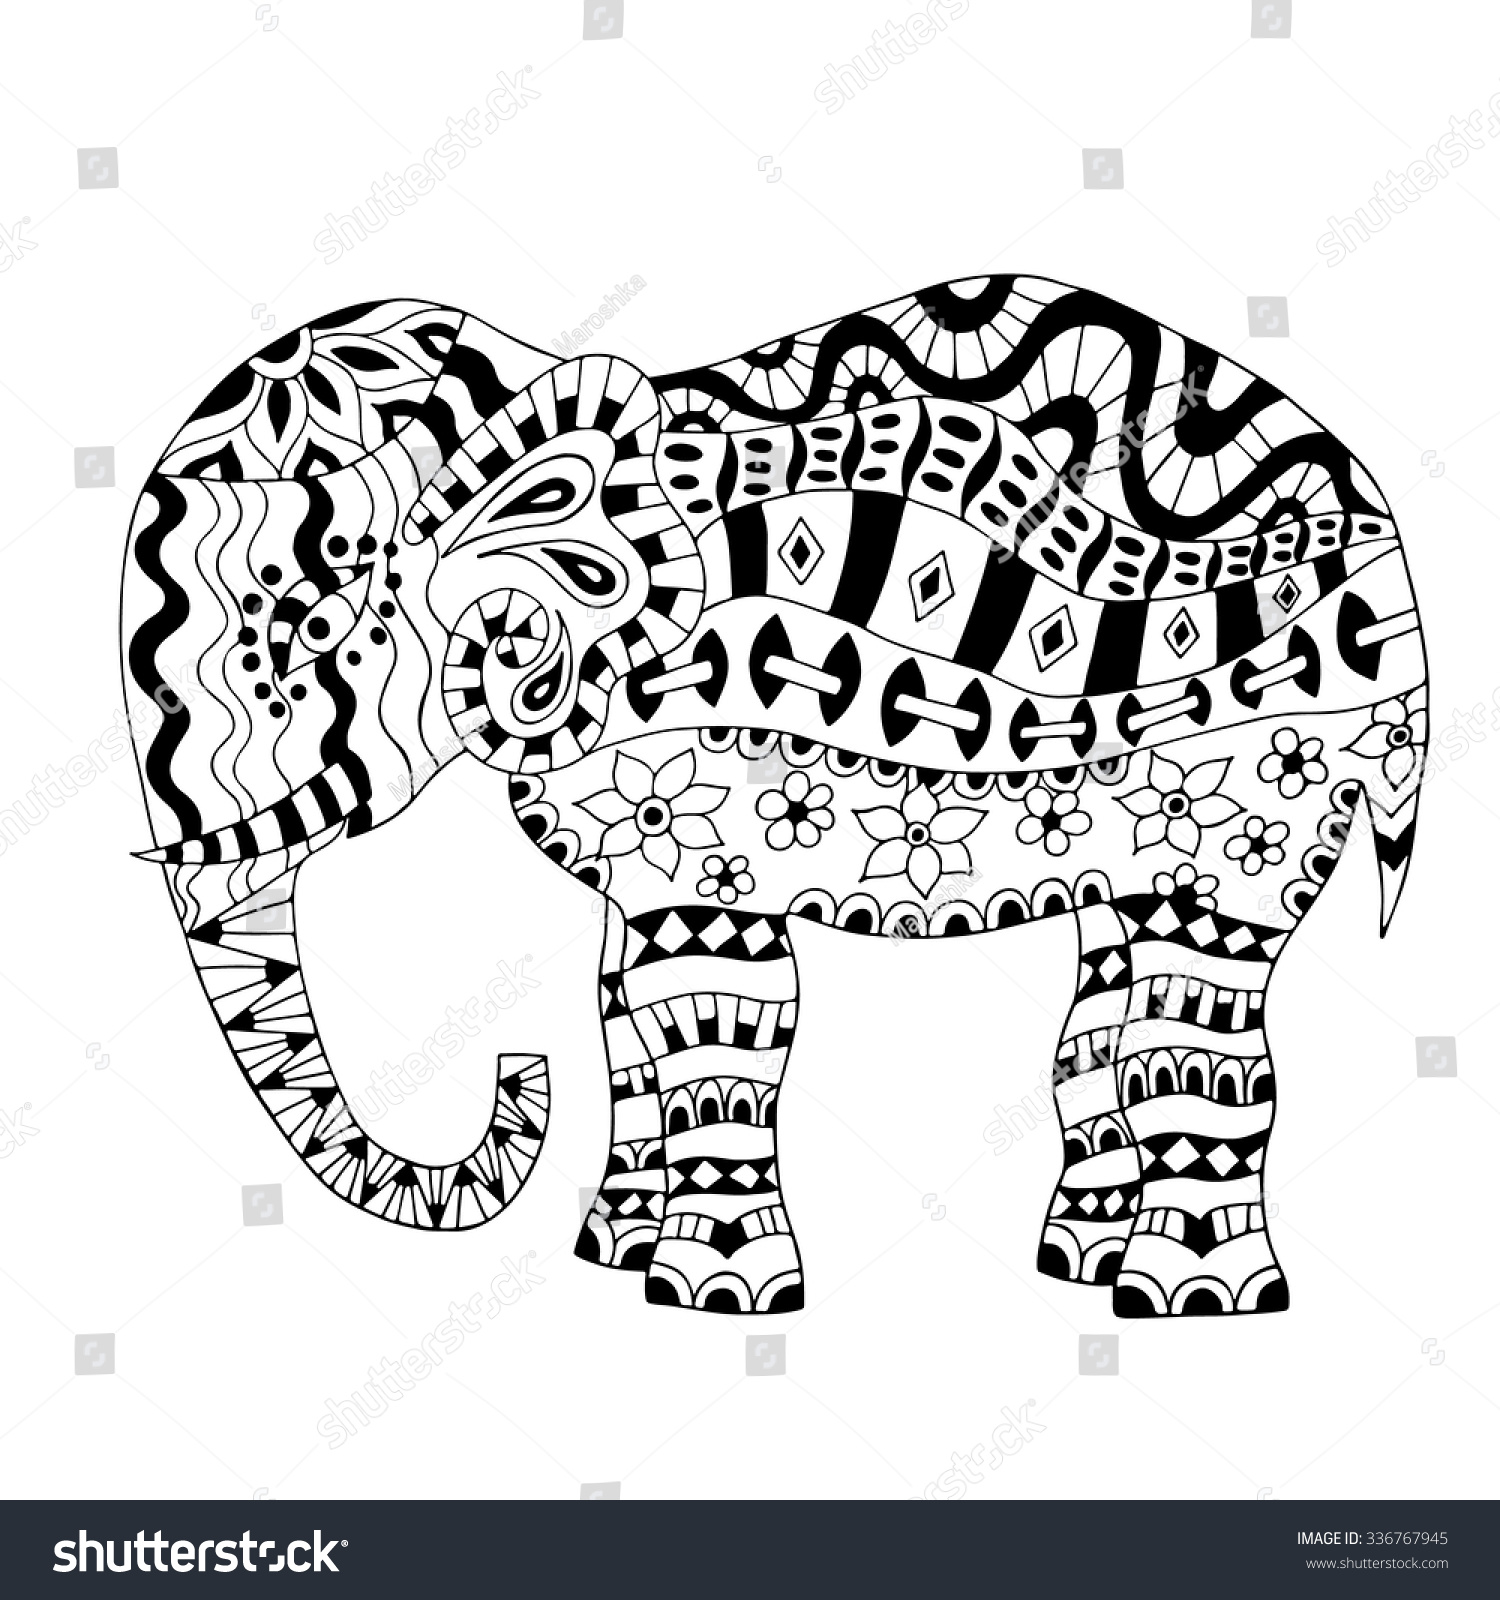 Hand Drawn Elephant Coloring Page Coloring Stock Vector 336767945 ...